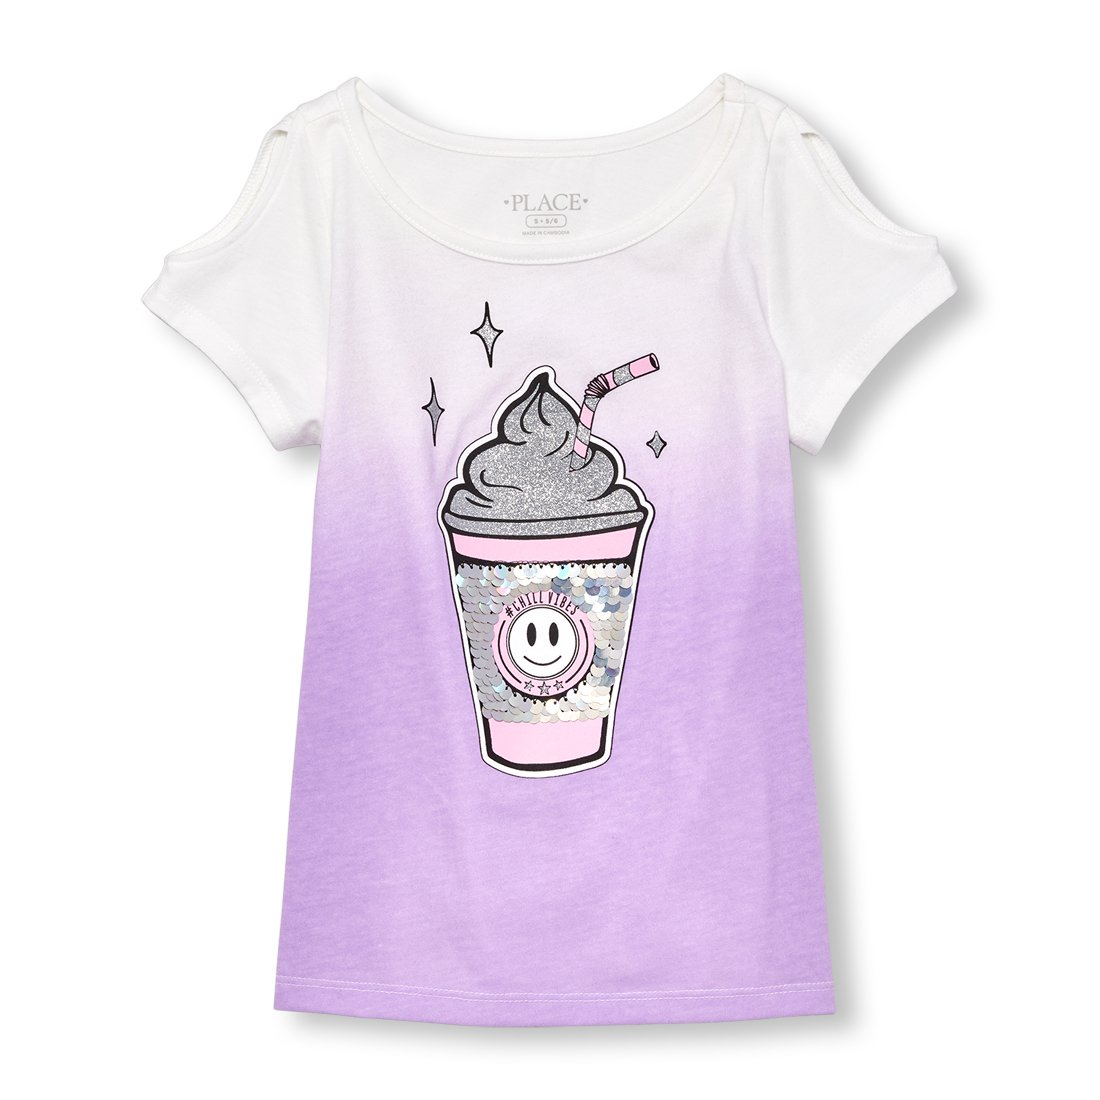 The Children's Place Big Girls' Short Sleeve Top, Purple Prose 02369, L (10/12)